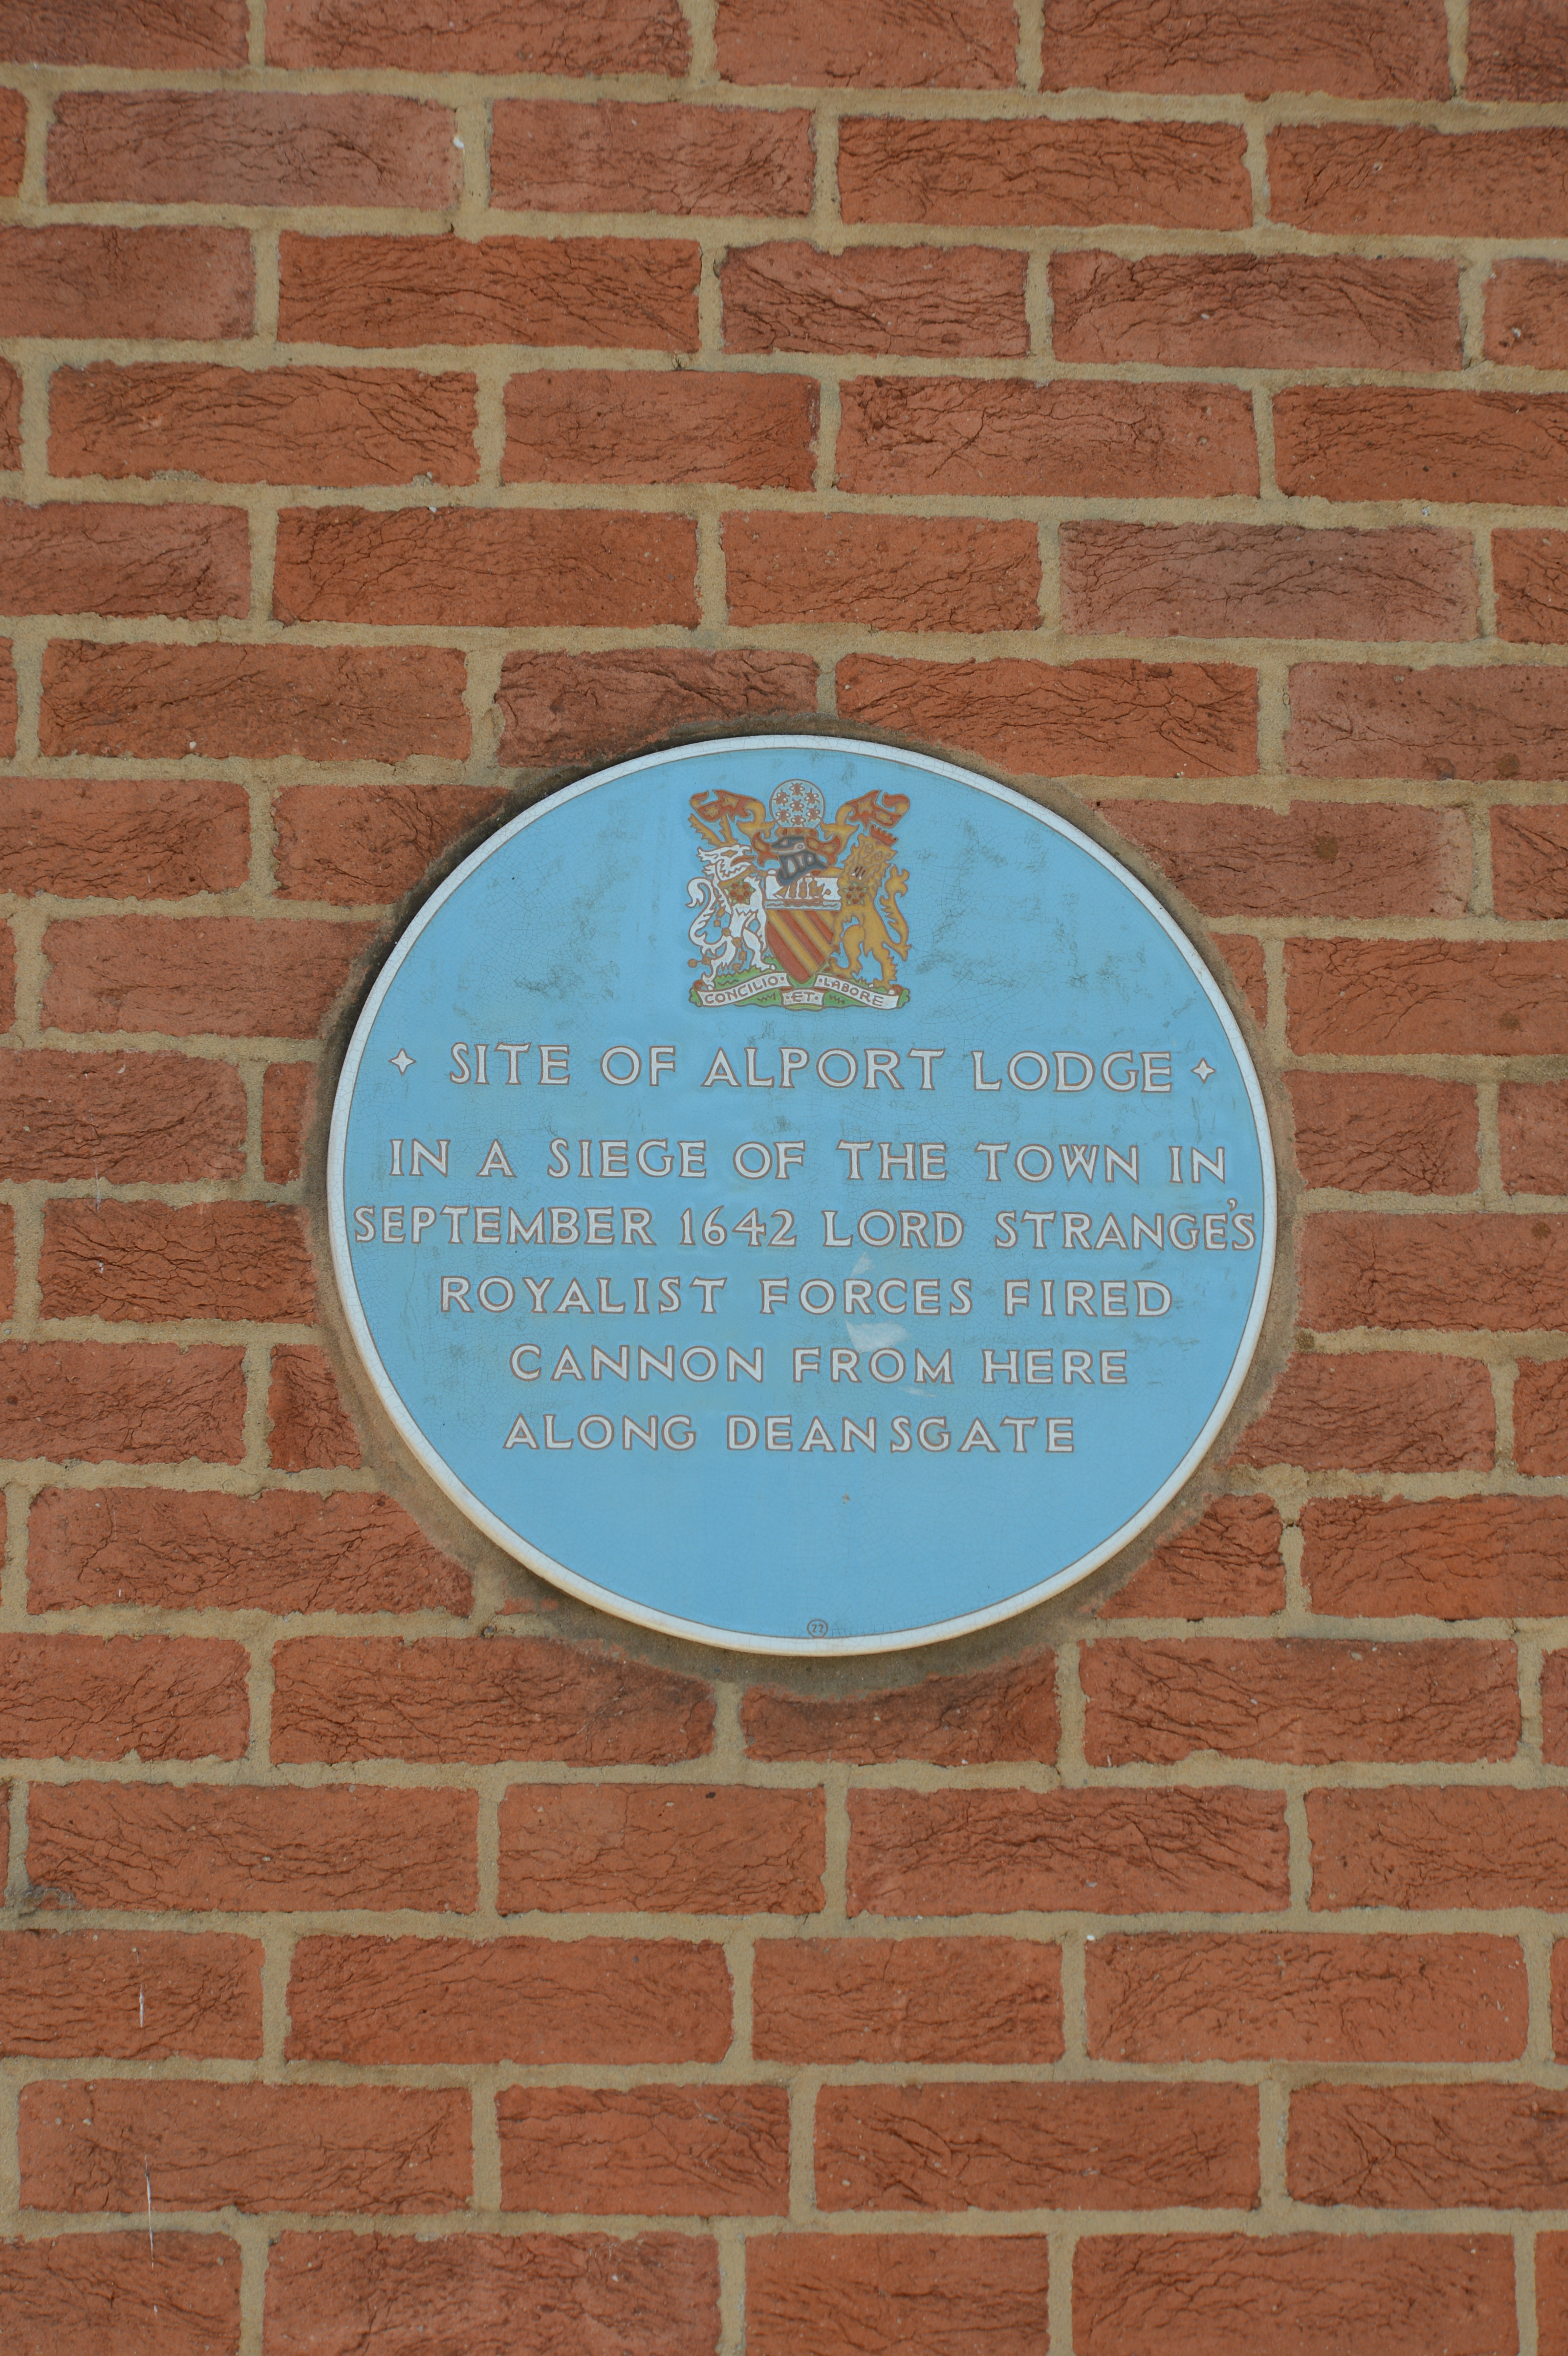 This plaque celebrates less settled times when the area was a battlefield in the English civil war.